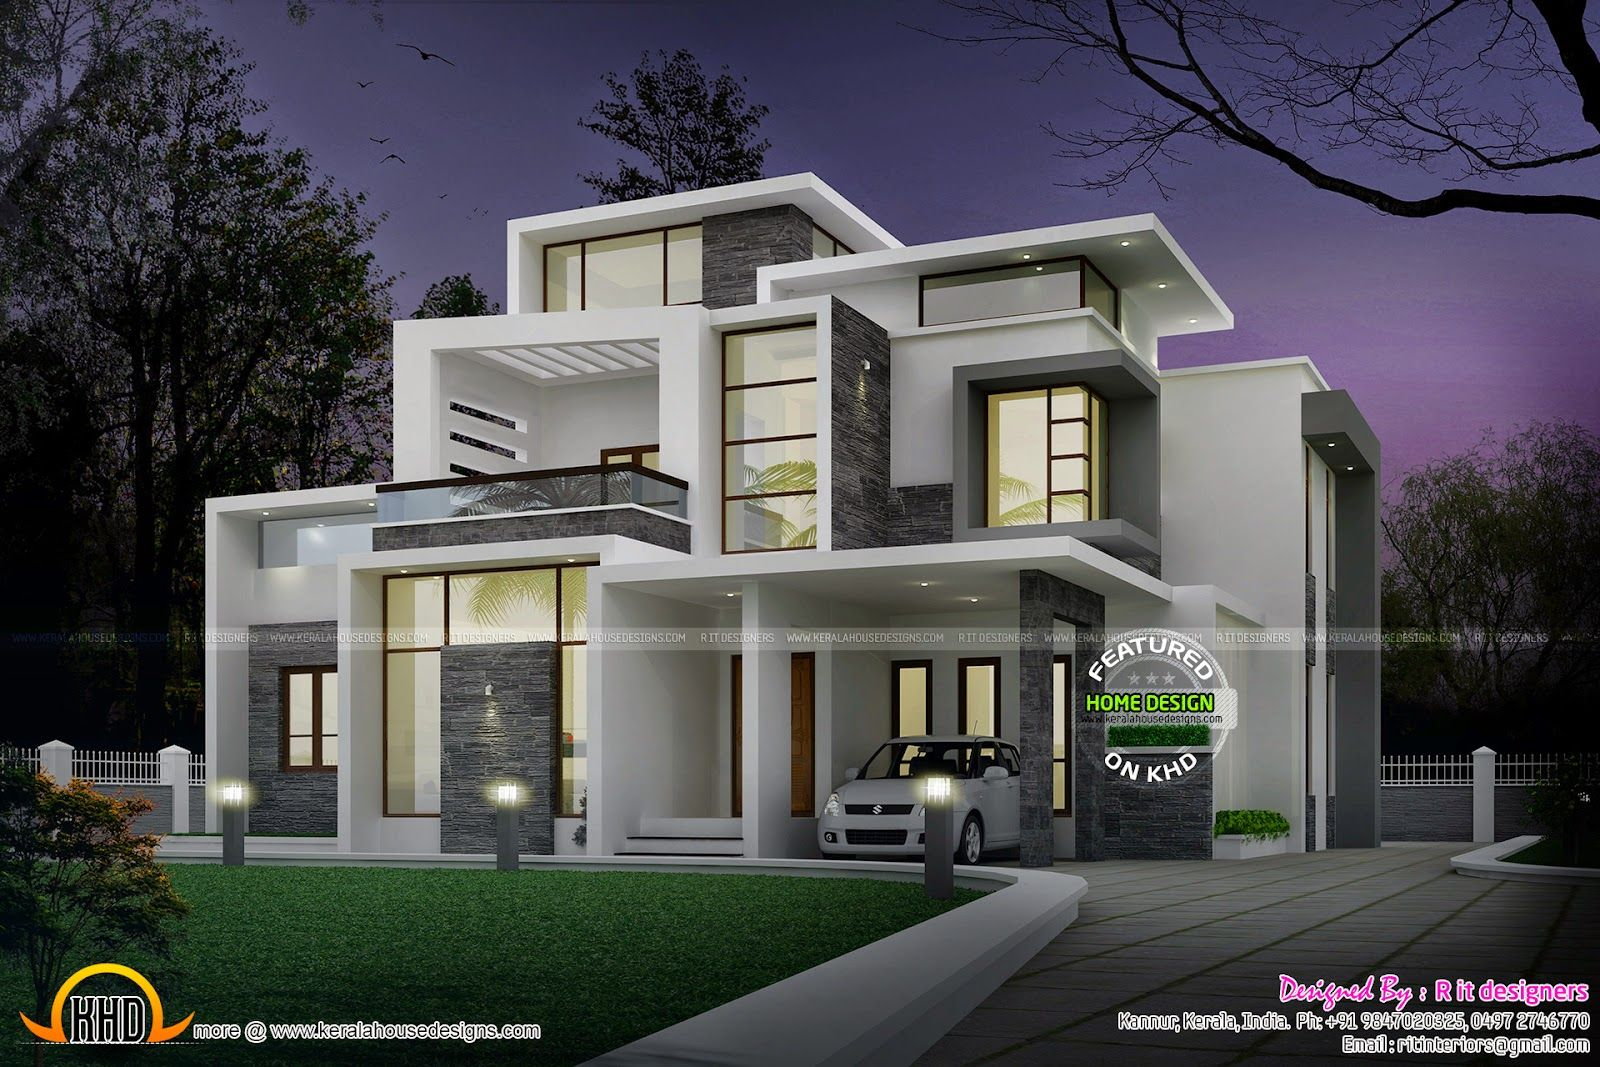 Grand contemporary home design kerala home design and for Post modern home design